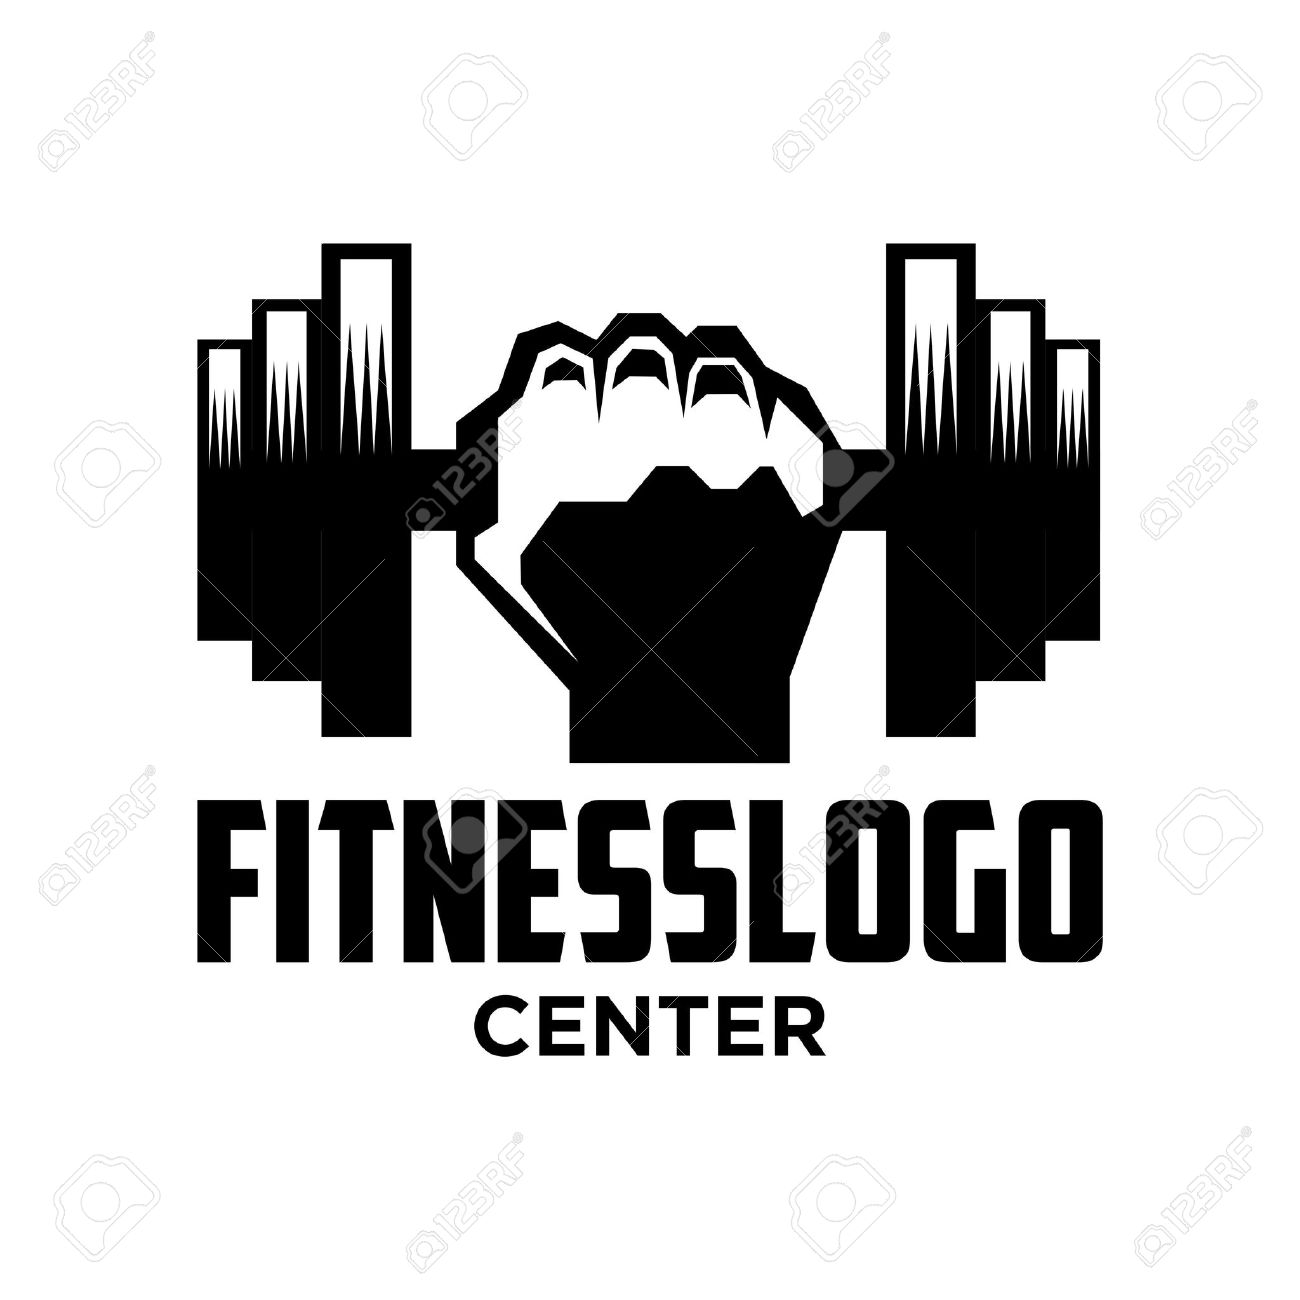 Gym Logo Stock Photos. Royalty Free Business Images for Gym Logo Pictures  110zmd